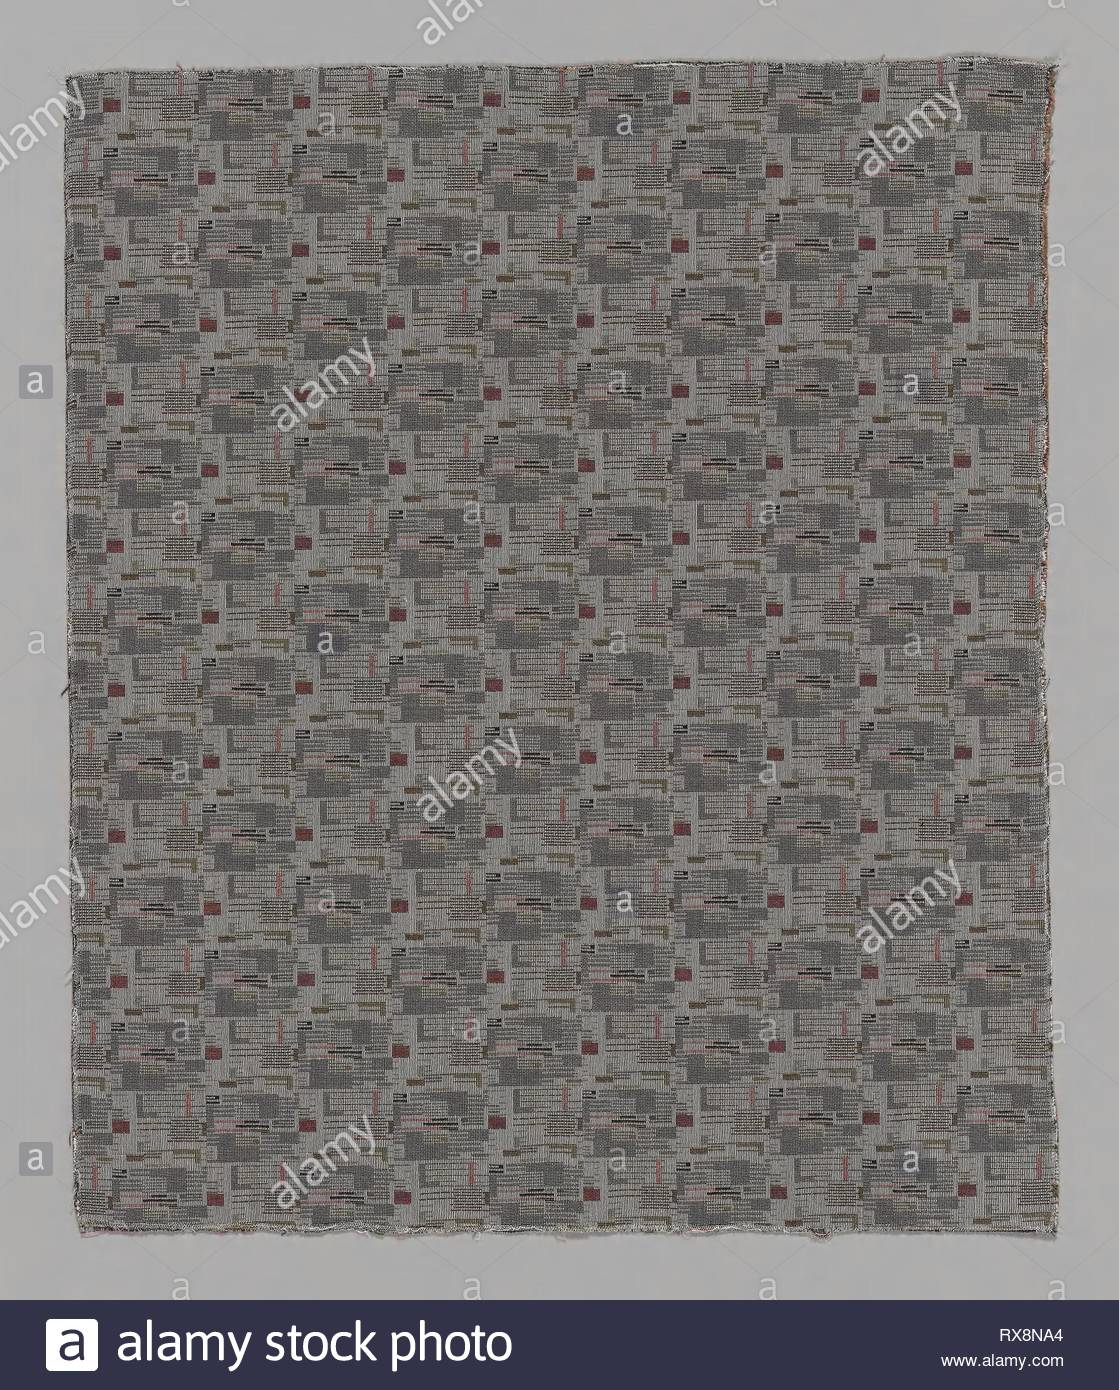 Rennie (Furnishing Fabric). Designed by Ben Rose (American, 1916-2004); Produced by Ben Rose, Inc. (United States, Illinois, Chicago); Manufactured by Langenthal Mills; Switzerland. Date: 1992. Dimensions: 70 × 58.6 cm (27 1/2 × 23 1/8 in.)  Repeat: 8.7 × 11.2 cm (3 3/8 × 4 3/8 in.). Nylon, cotton, wool and rayon, complementary warp and weft plain weave. Origin: Chicago. Museum: The Chicago Art Institute. - Stock Image